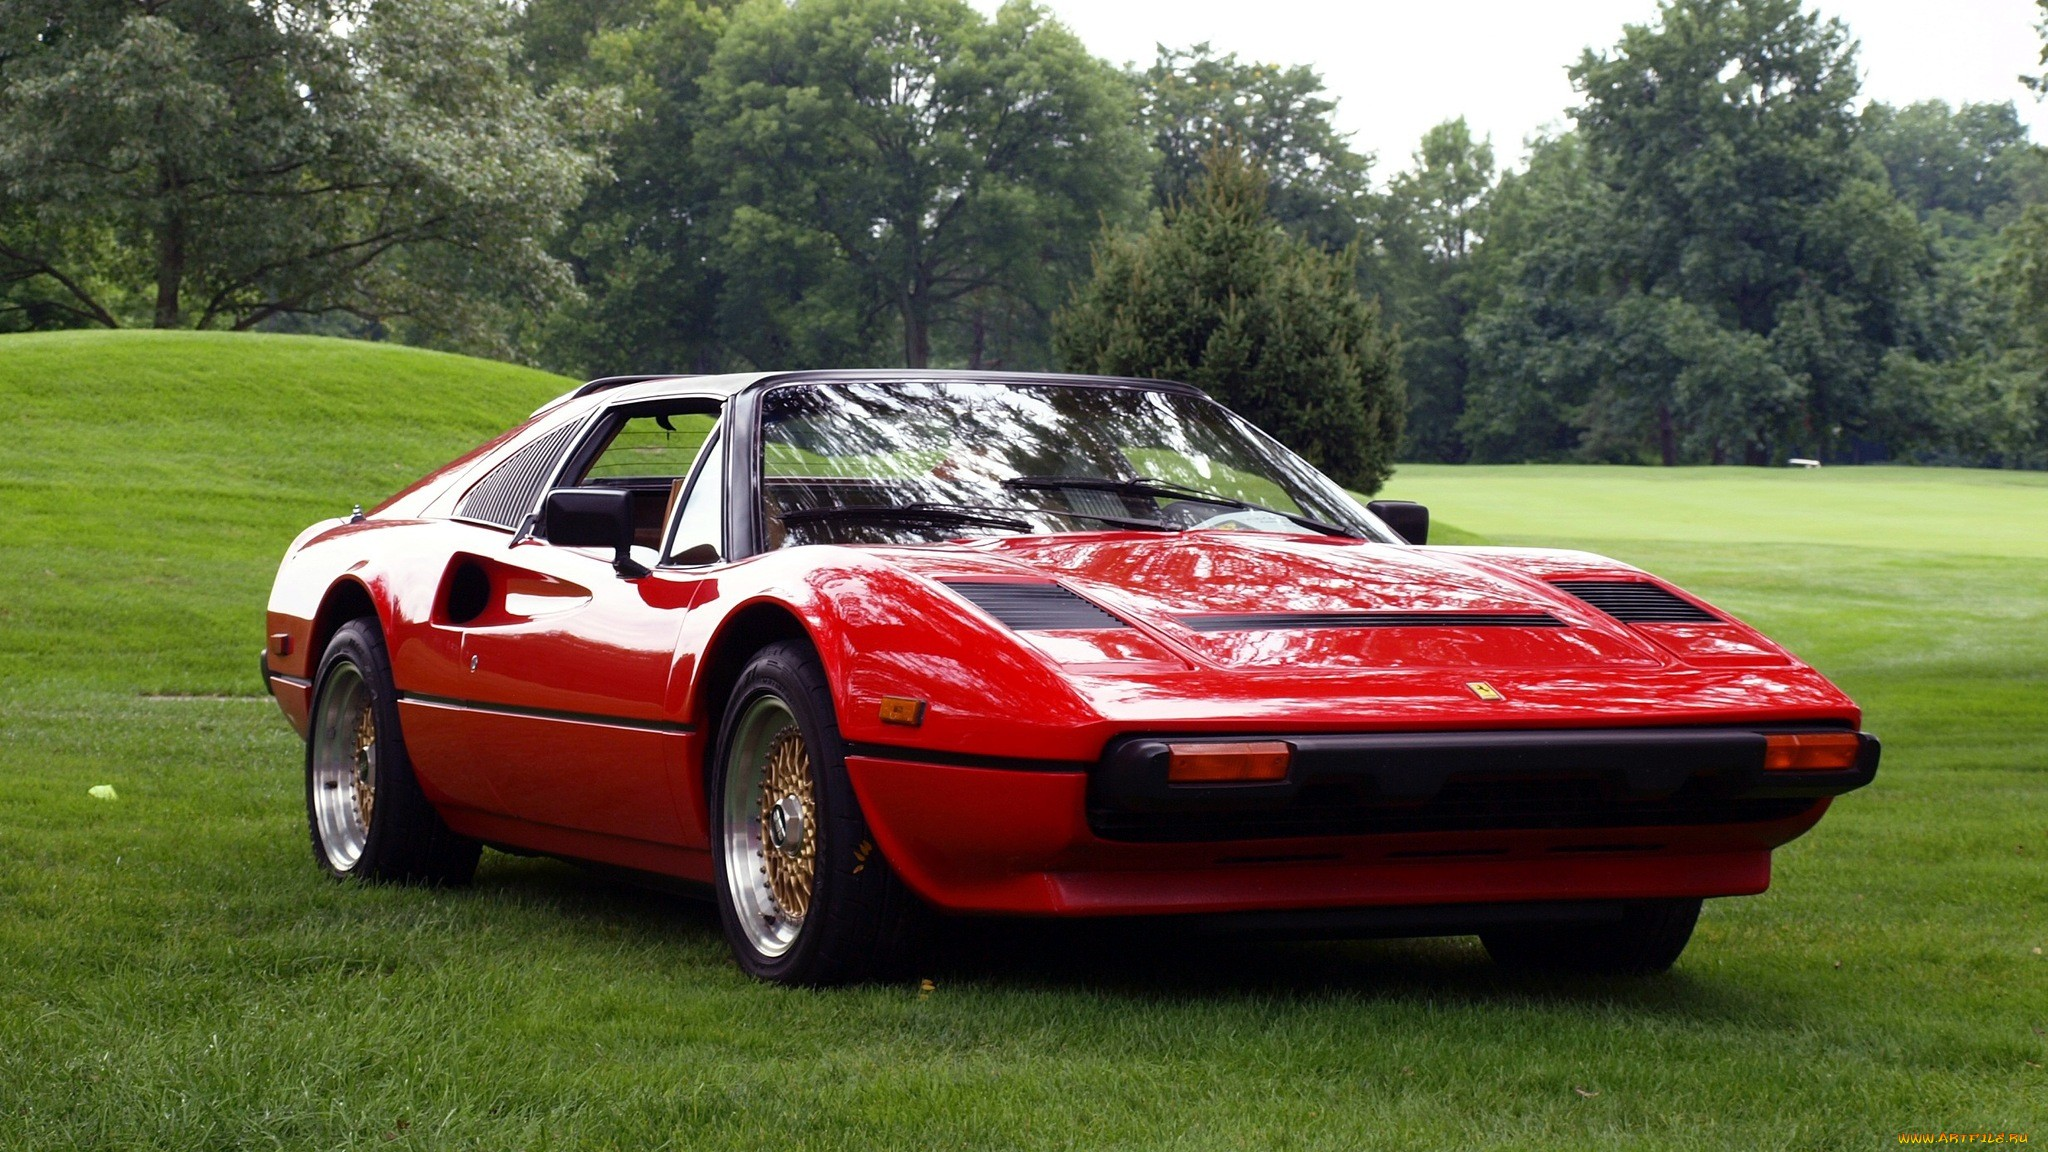 Ferrari 308 supercar red wallpaper 2048x1152 43005 WallpaperUP 2048x1152